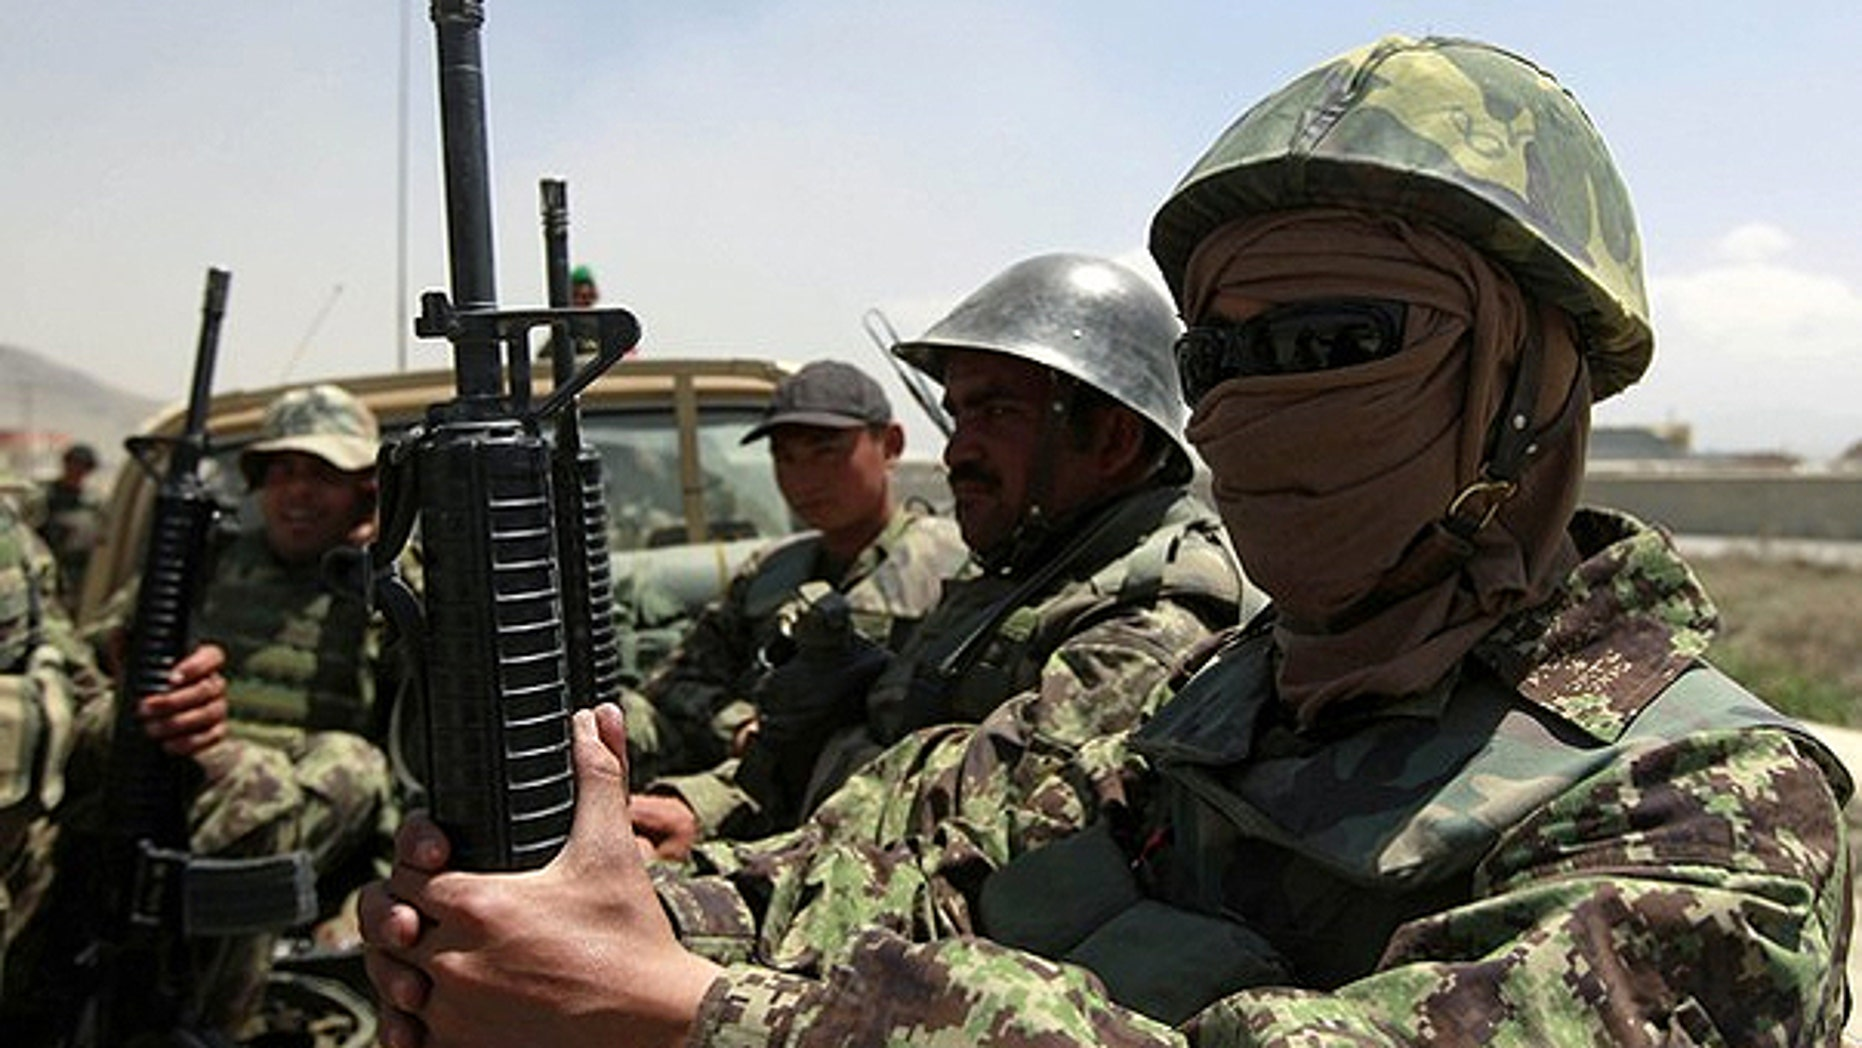 April 27: Afghan National Army (ANA) soldiers arrive at the gate of the Afghan air force compound in Kabul.